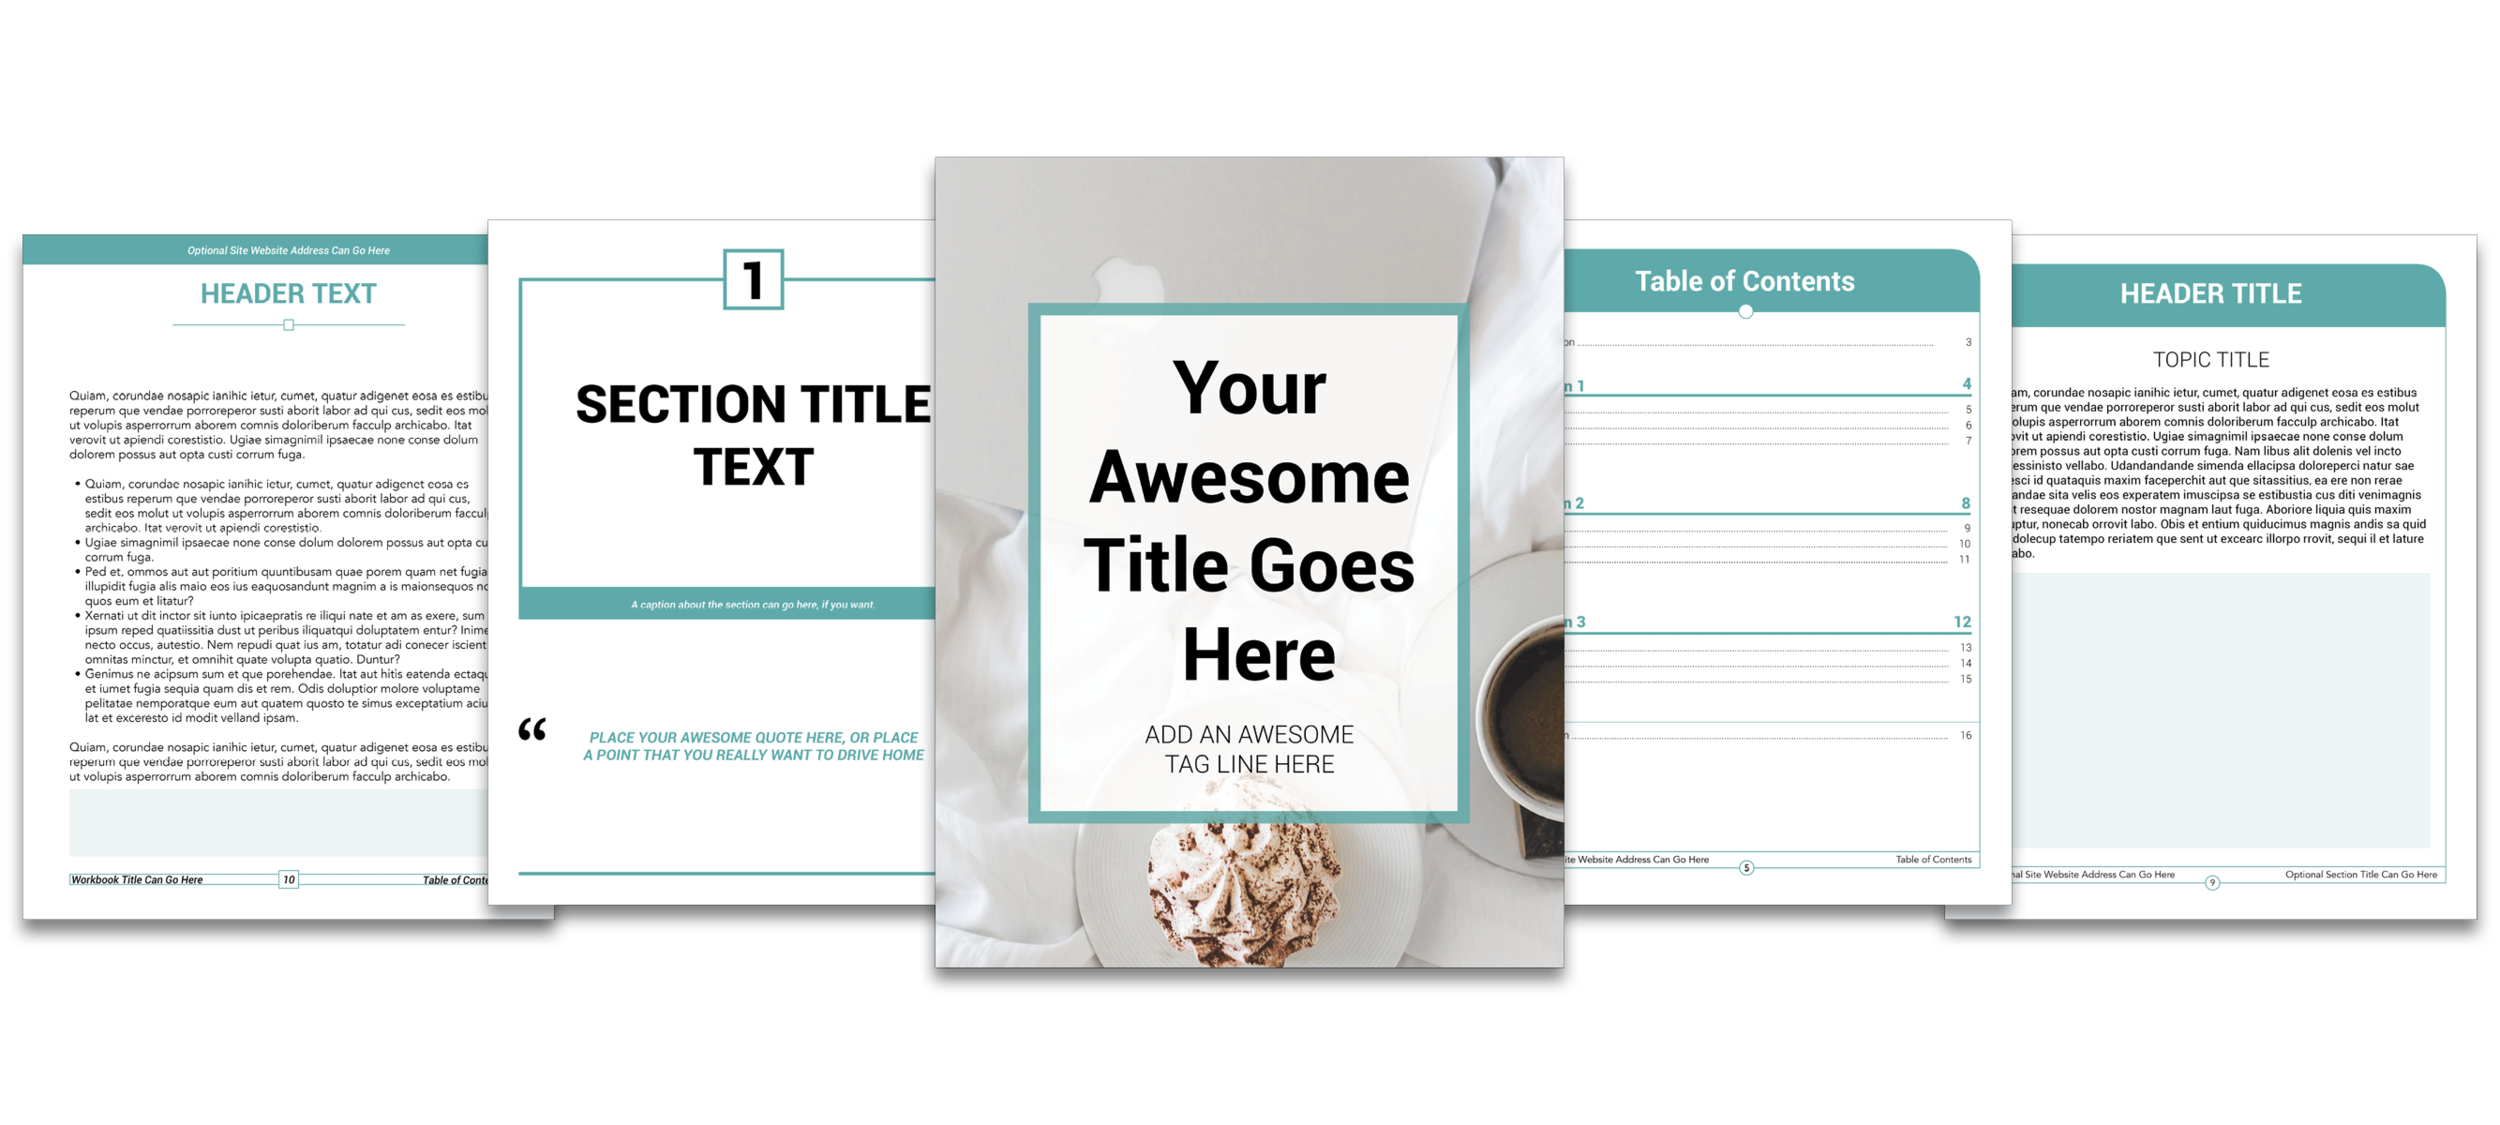 InDesign Templates for Online Entrepreneurs, Small Business Owners, & Side Hustlers | Create Your Own eBooks, Workbooks, Checklists, & More | viaYuri.com